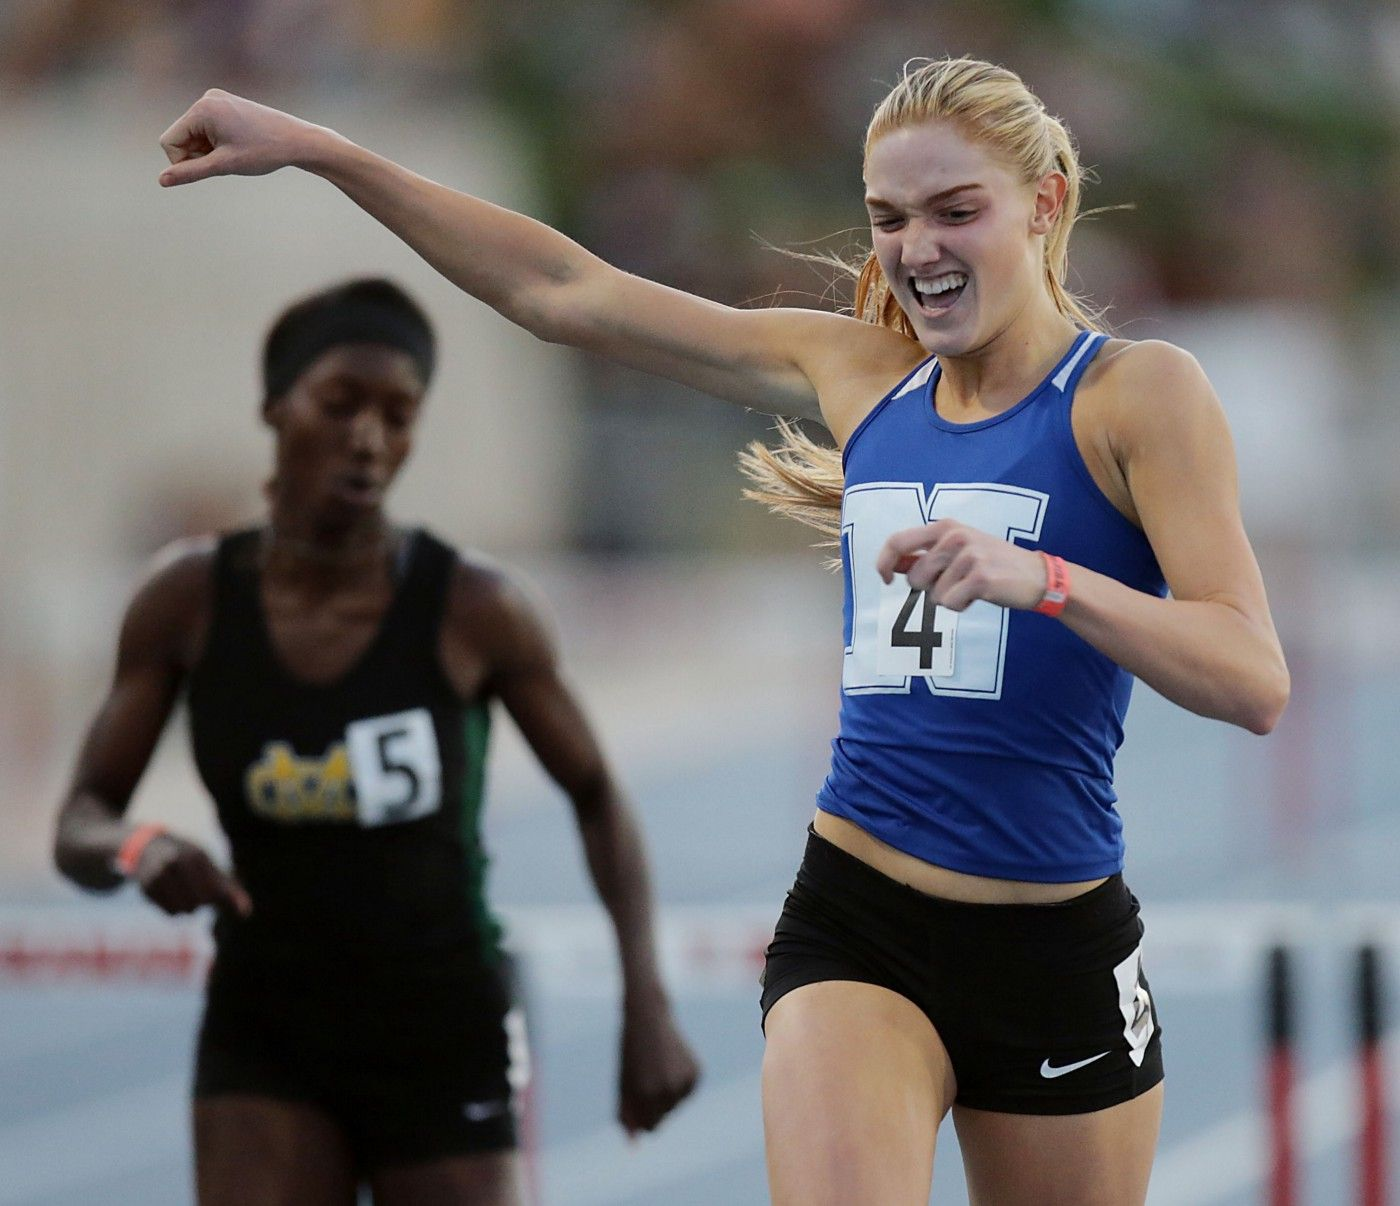 Female athlete racing; Track and Field